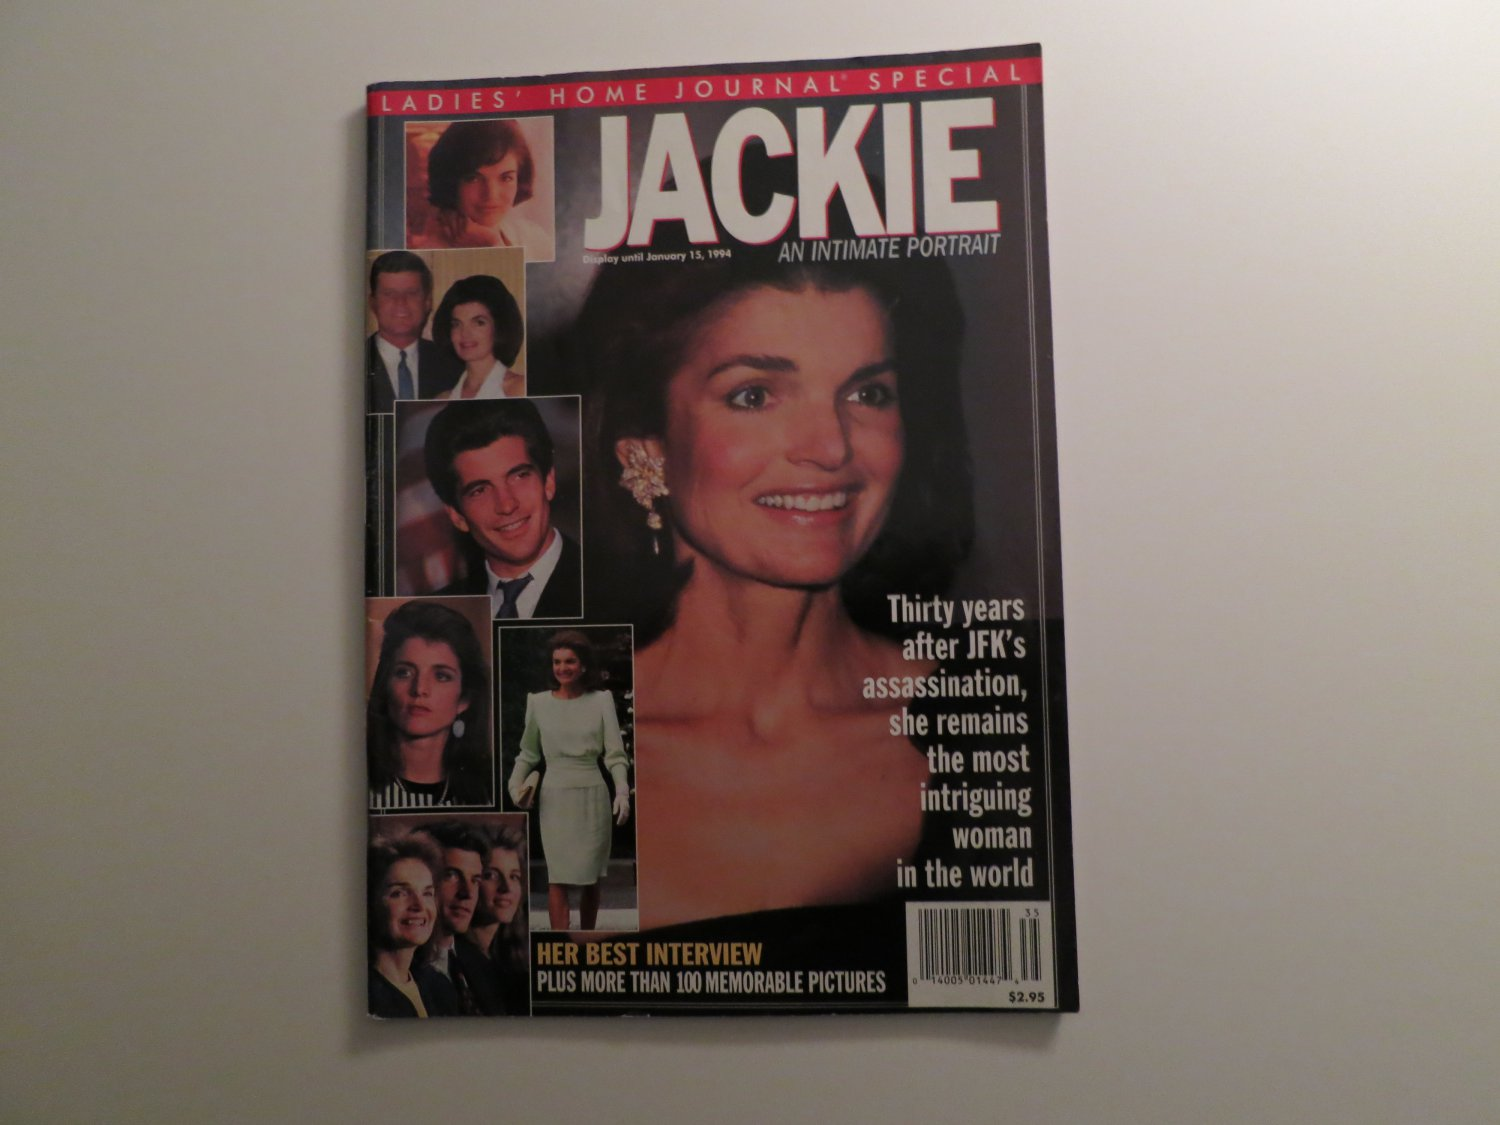 Ladies' Home Journal Special (Jackie) An Intimate Portrait 1994